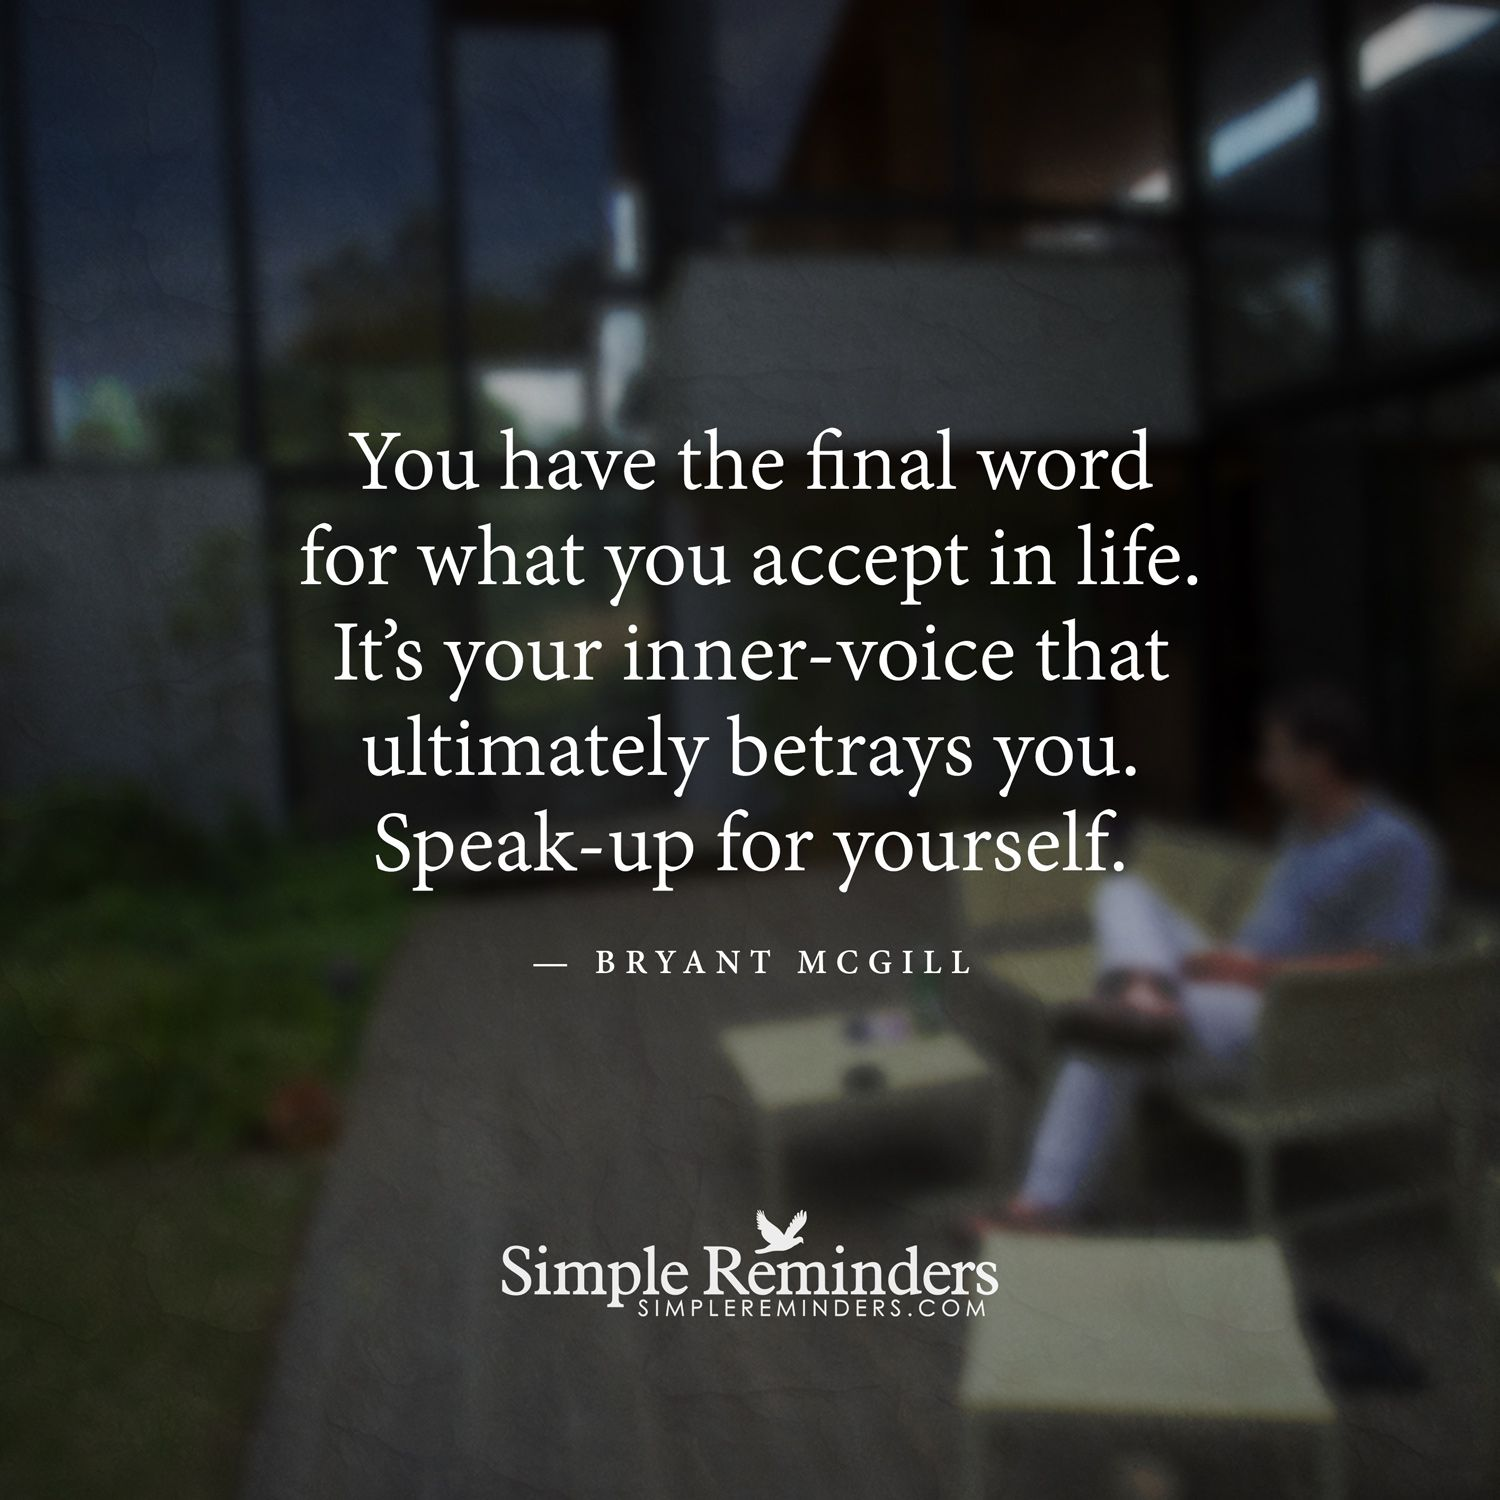 Finals Quotes You Have The Final Word For What You Accept In Lifeit's Your